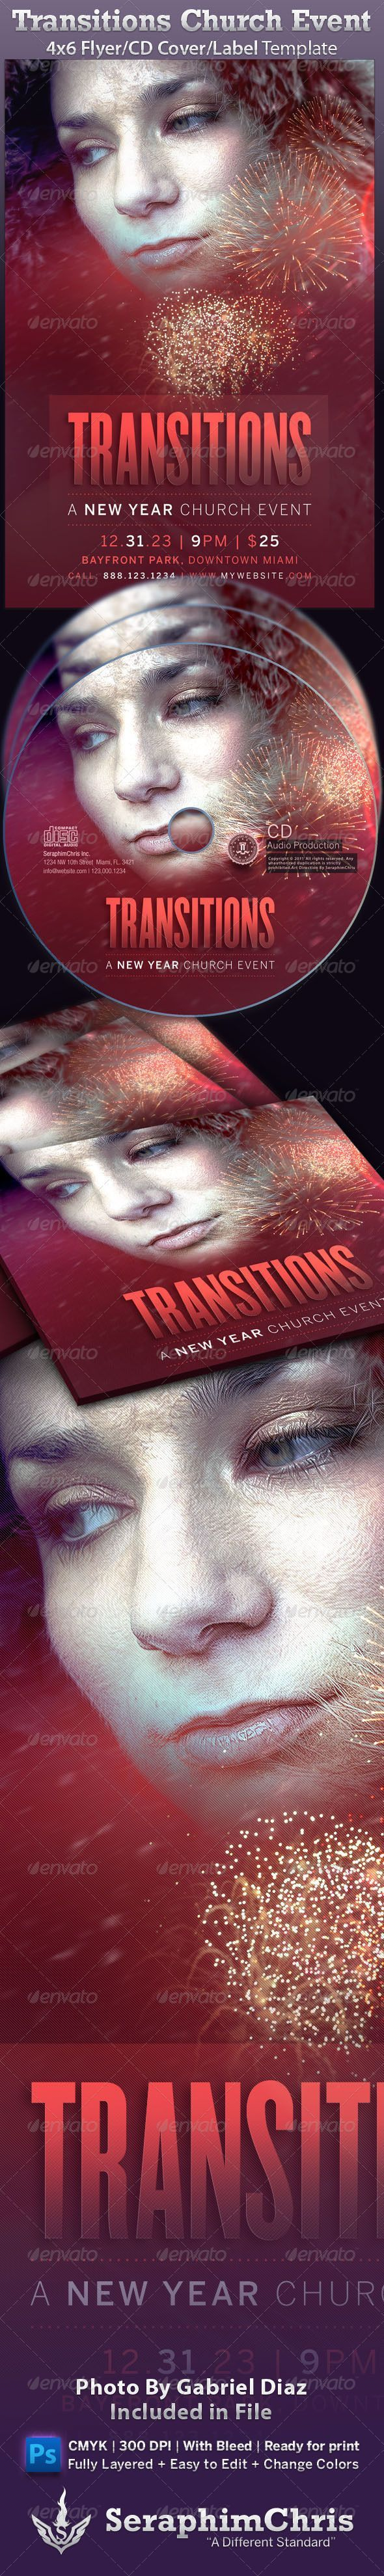 Transitions Church New Year Event Flyer  #GraphicRiver         Photo by Gabriel Diaz Photography photodune /user/GabrielDiaz   This Transitions Church New Year Event Flyer template is customized for the Church Events and anyone who needs a cool inviting mood, with modern and unique look for their church or concert promotion audio books, mixtapes or sermons. Add this to your promotional arsenal for a maximum effect with your contemporary audience.   In this package you'll get a great value…